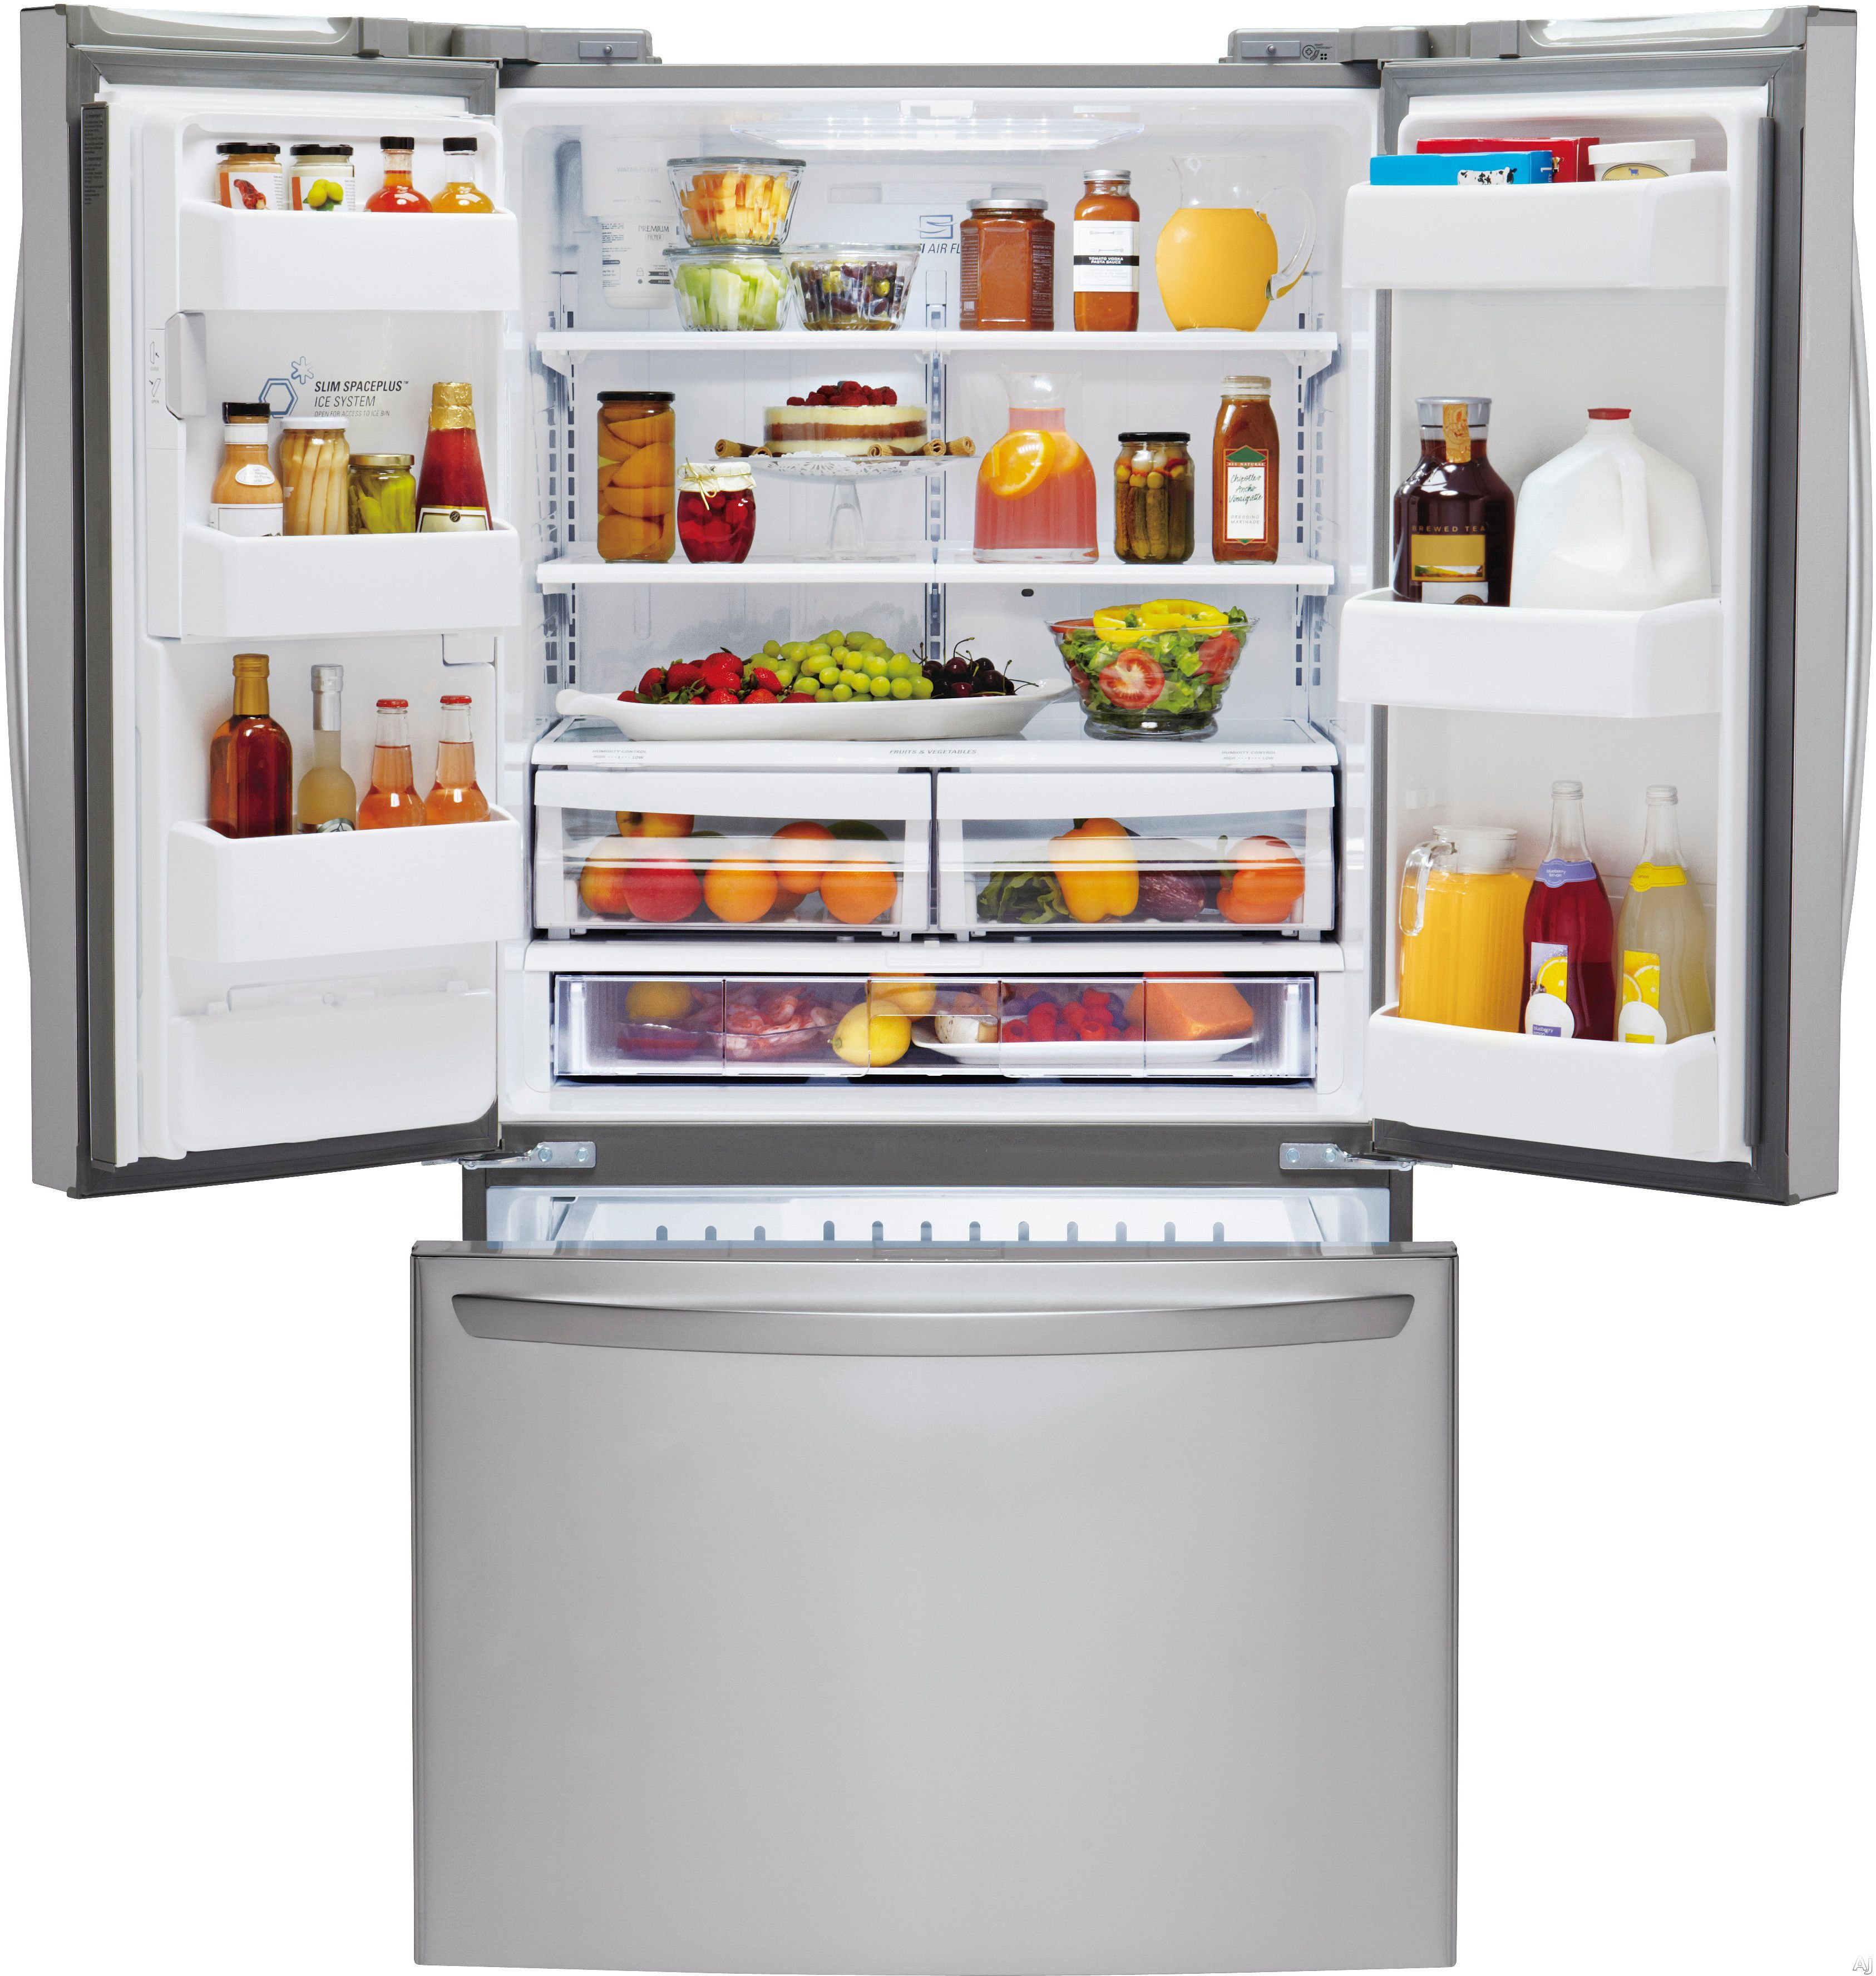 Lg Lfx25973st 24 7 Cu Ft French Door Refrigerator With Spill